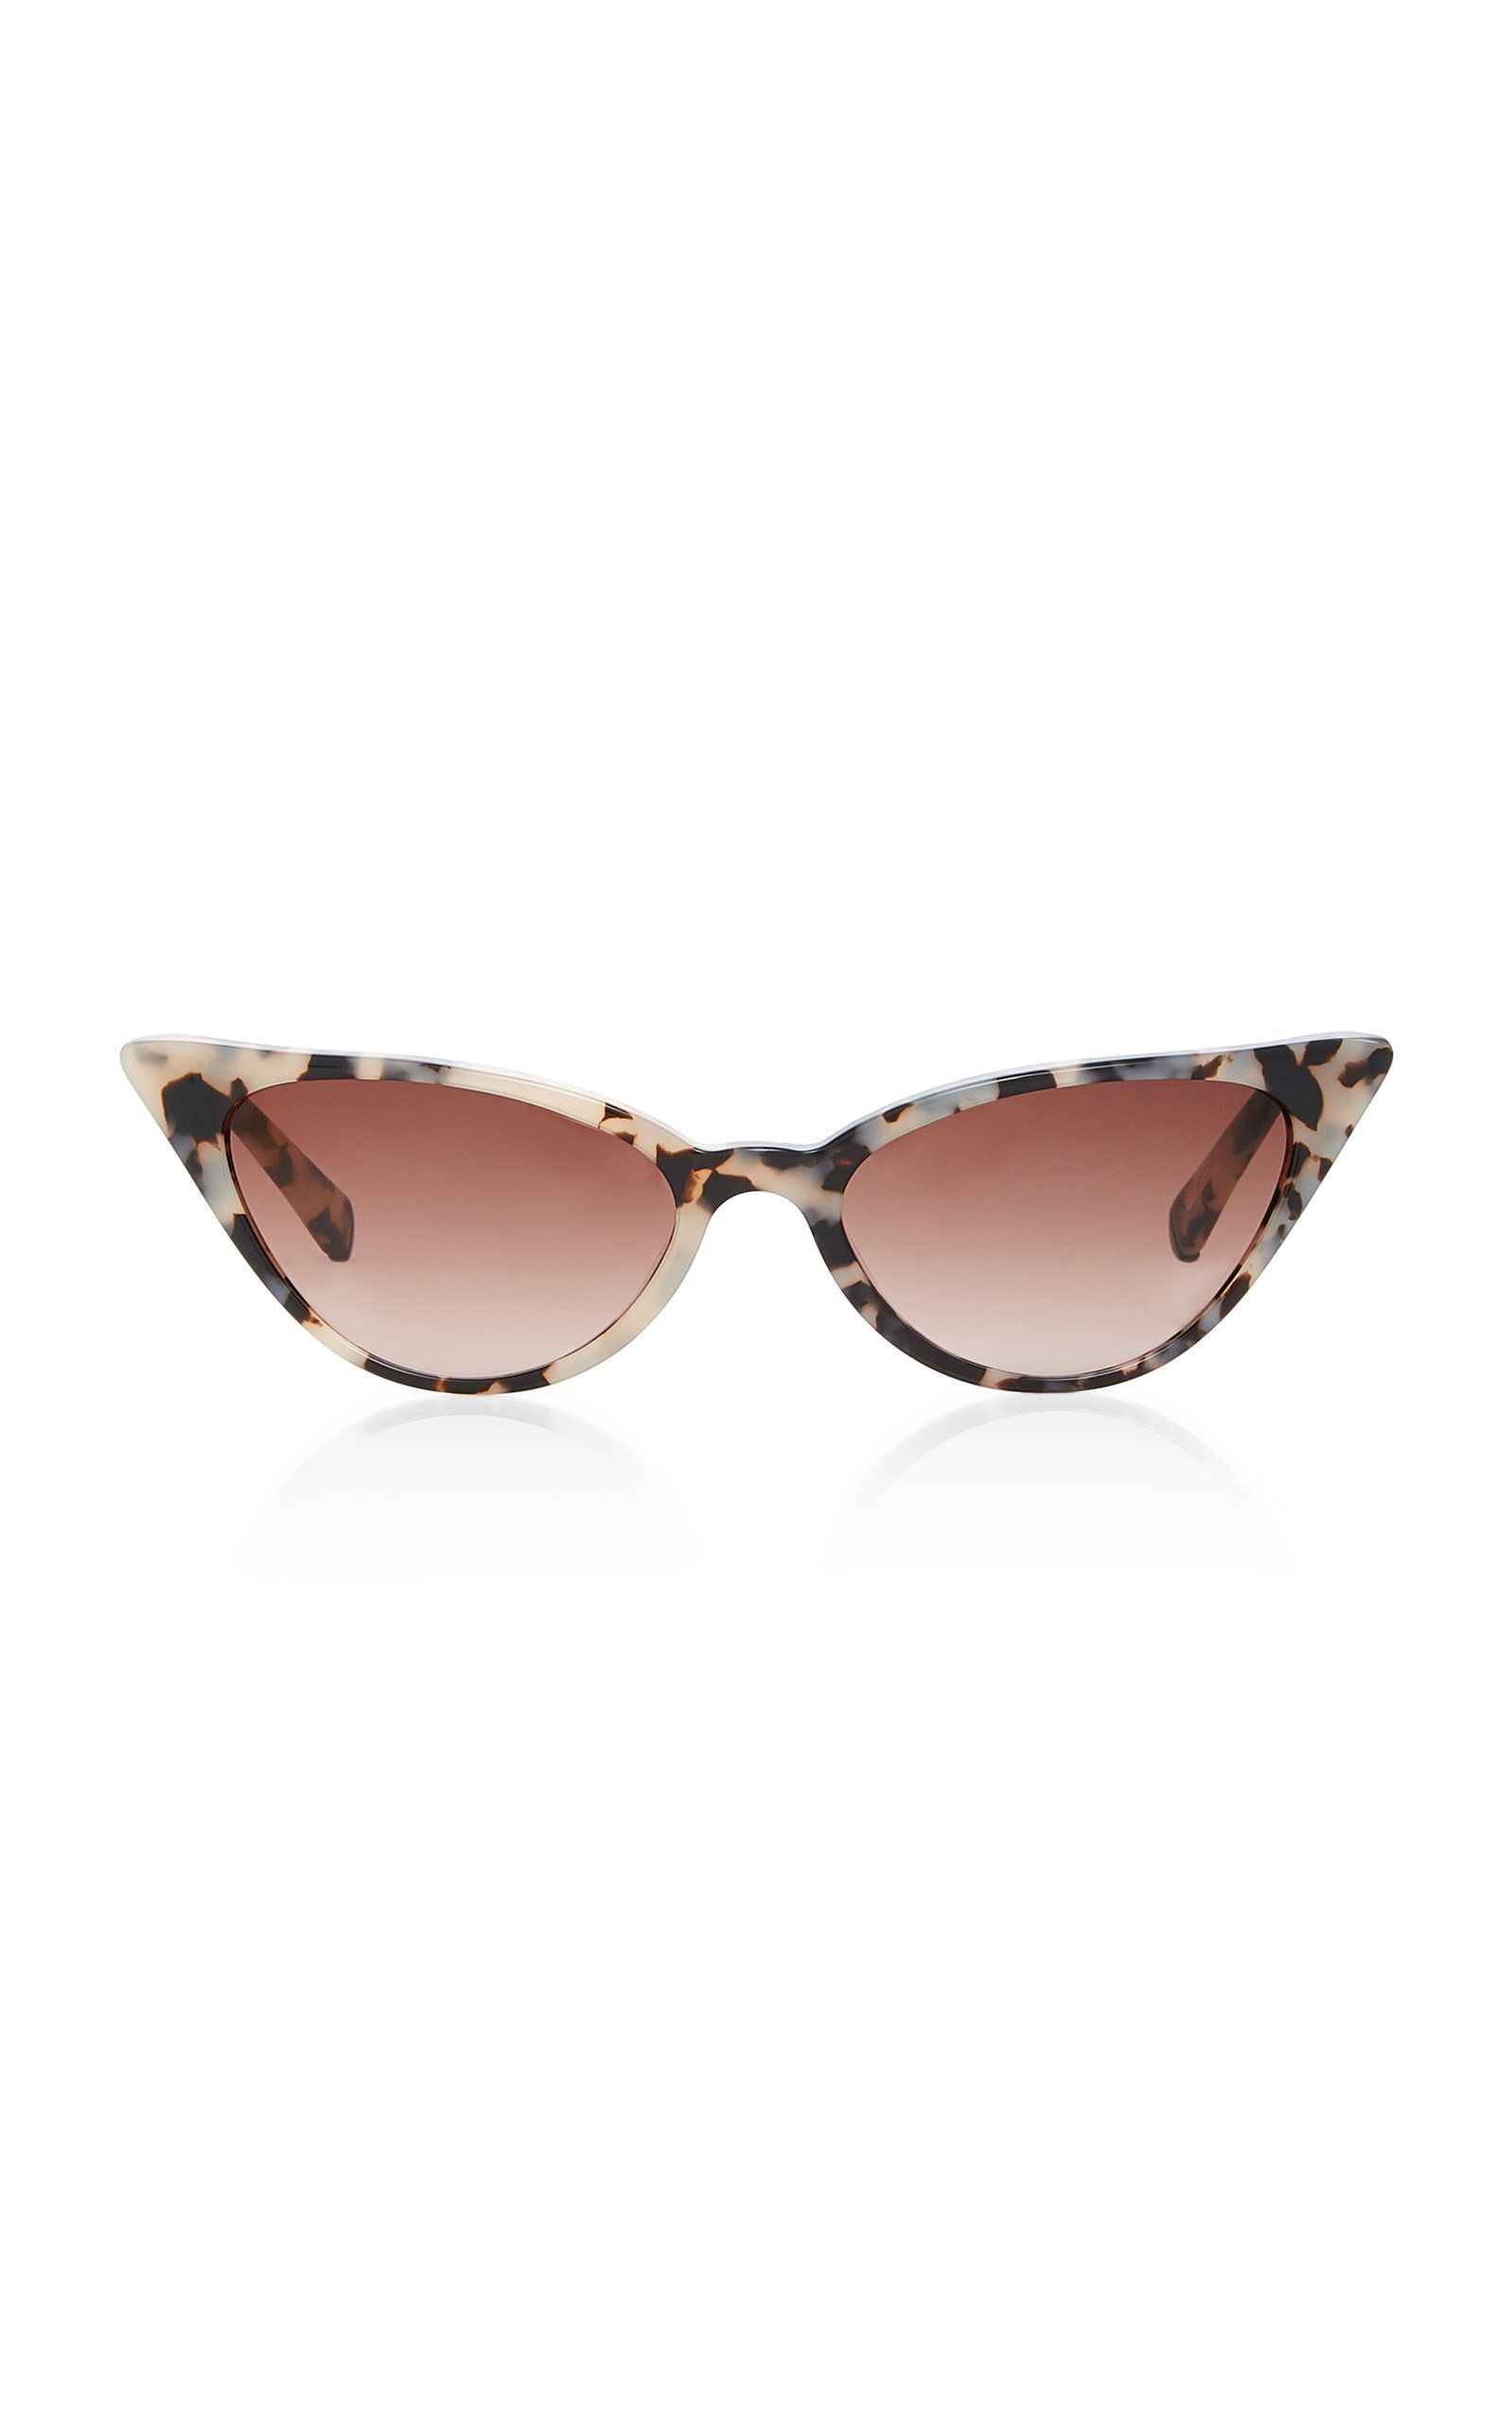 Kate Young Lita Tortoiseshell Cat-Eye Acetate Sunglasses   Eyewear ... 2b2725b76284